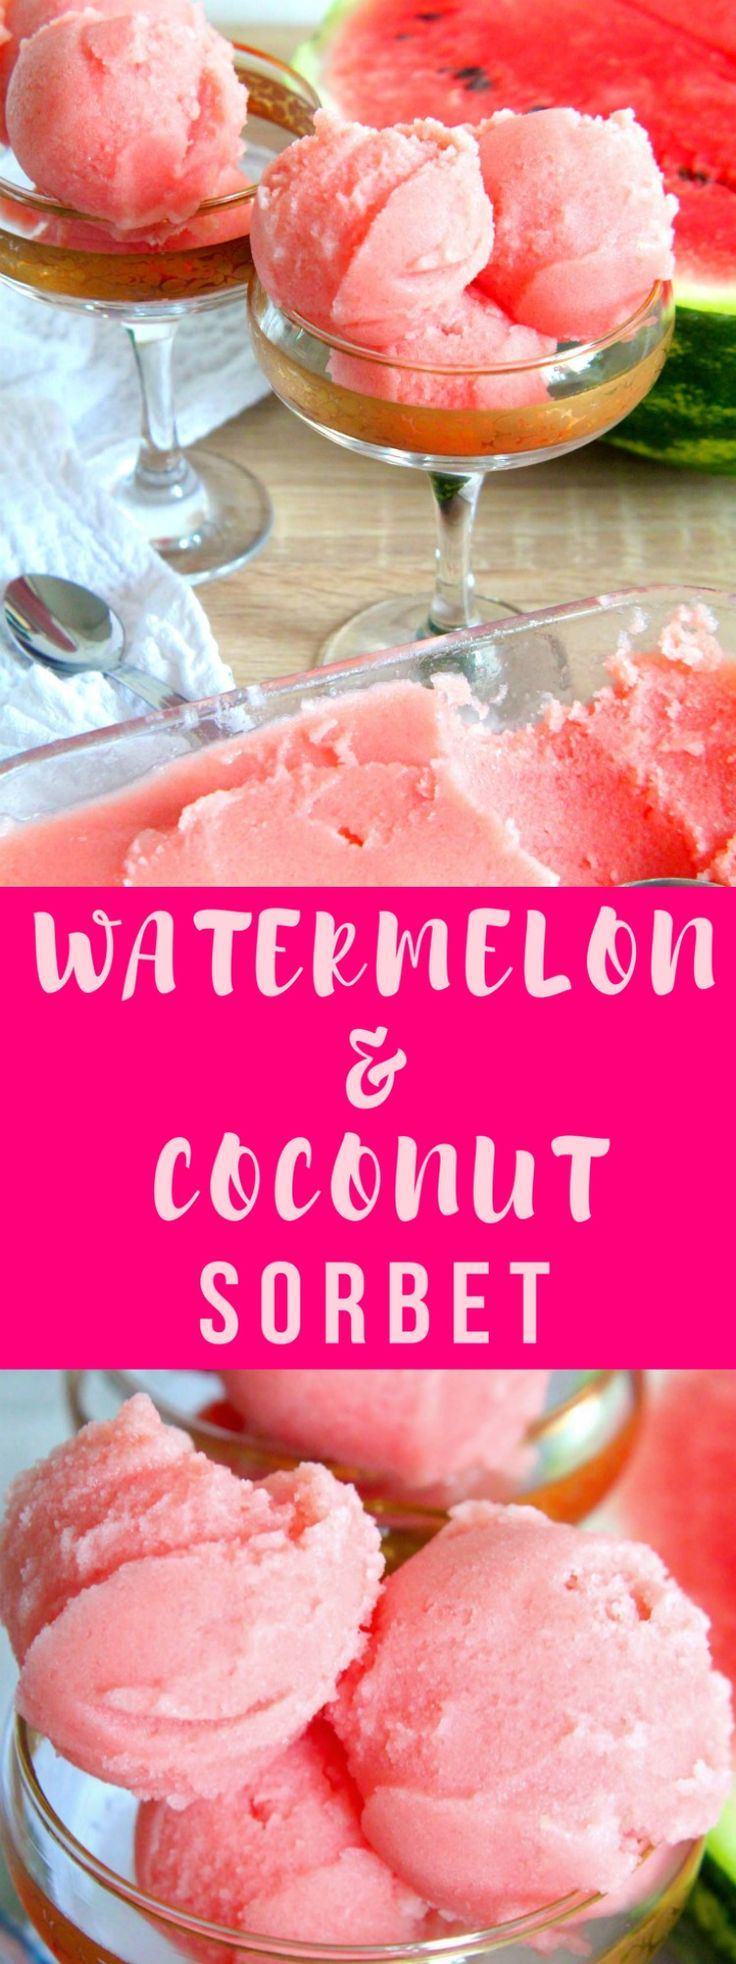 WATERMELON COCONUT SORBET RECIPE - All you need is three simple ingredients to make this incredibly delicious watermelon sorbet! So creamy, you won't believe this dessert is healthy & vegan!  #watermelon #sorbet #watermelonsorbet #dessert